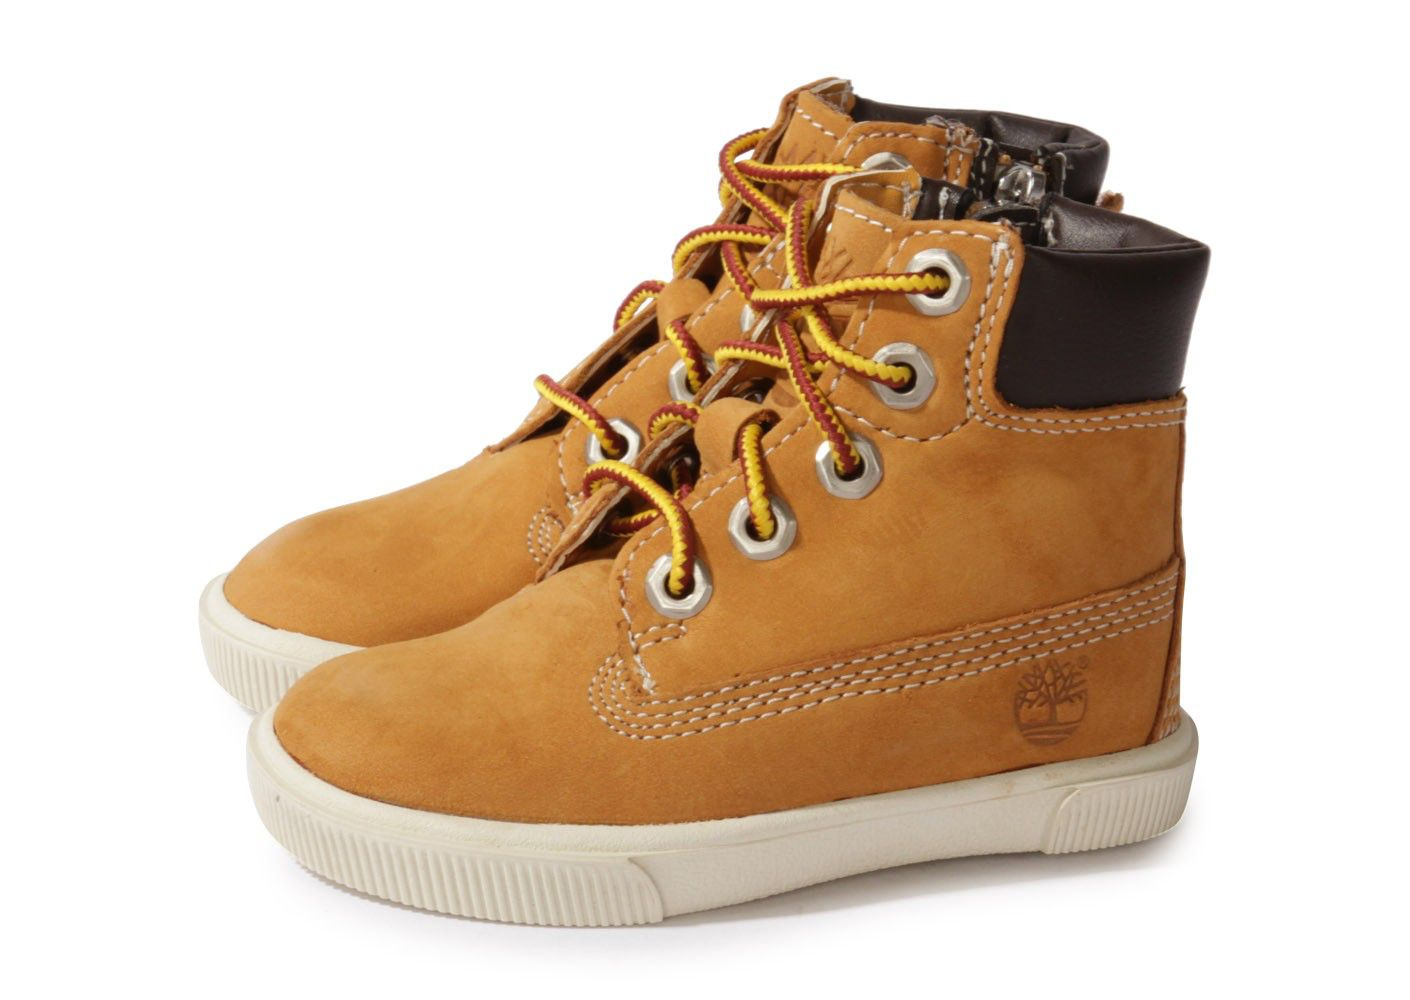 Chaussures Timberland Enfant,chaussure timberland soldes